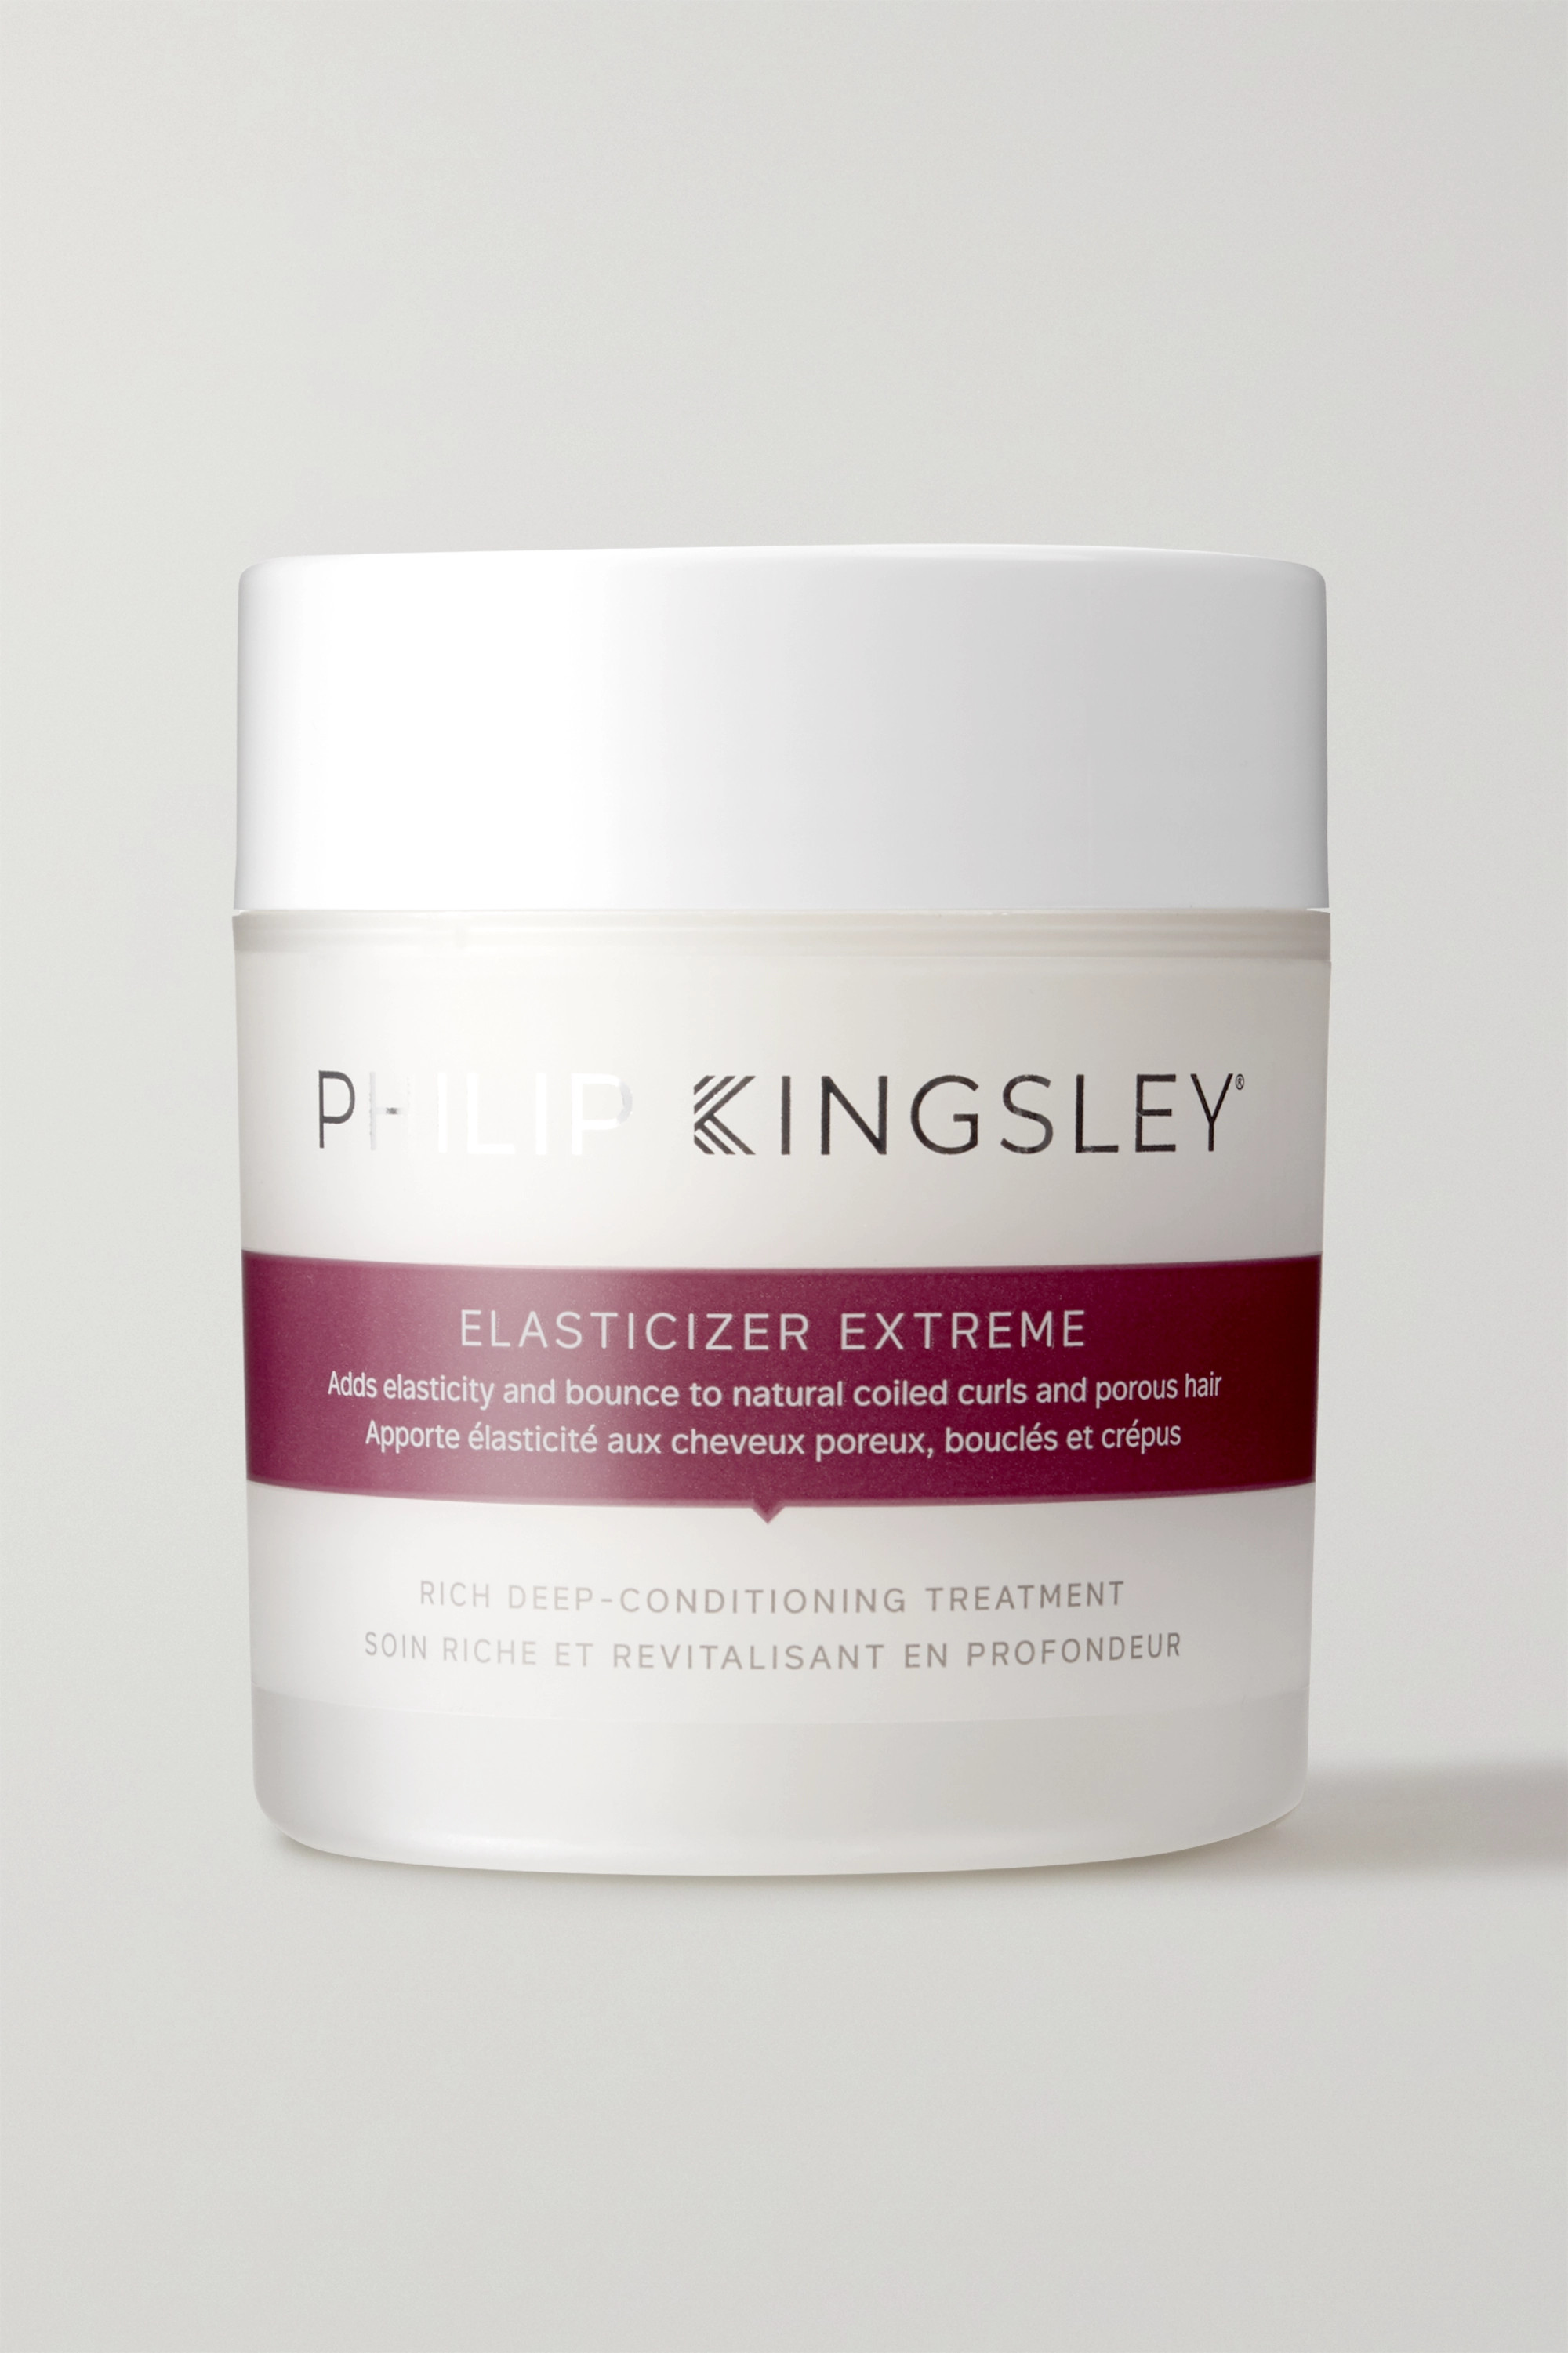 PHILIP KINGSLEY Elasticizer Extreme, 150ml